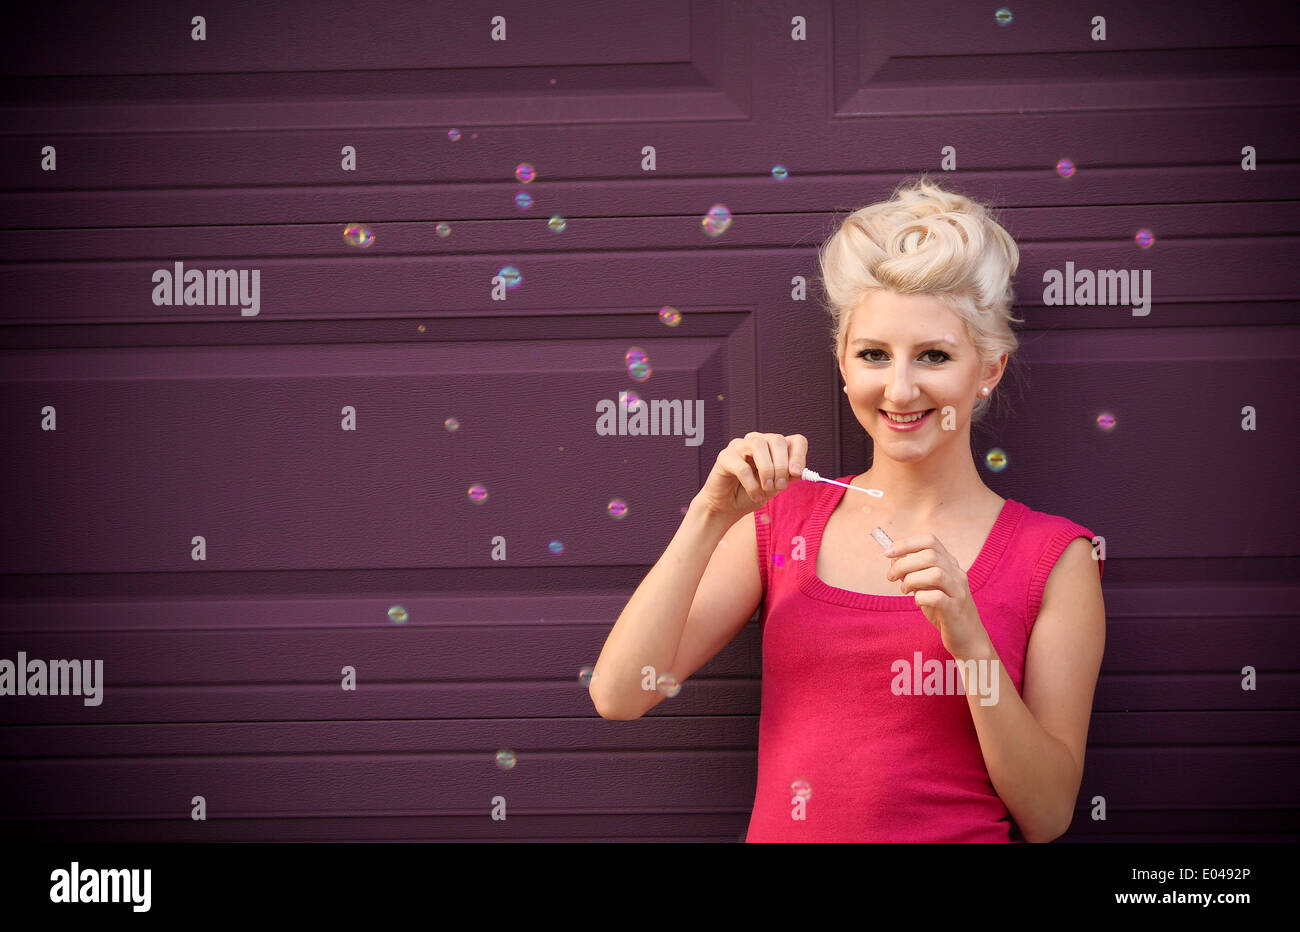 Blond girl blowing bubbles in a pink shirt in front of a purple wall - Stock Image